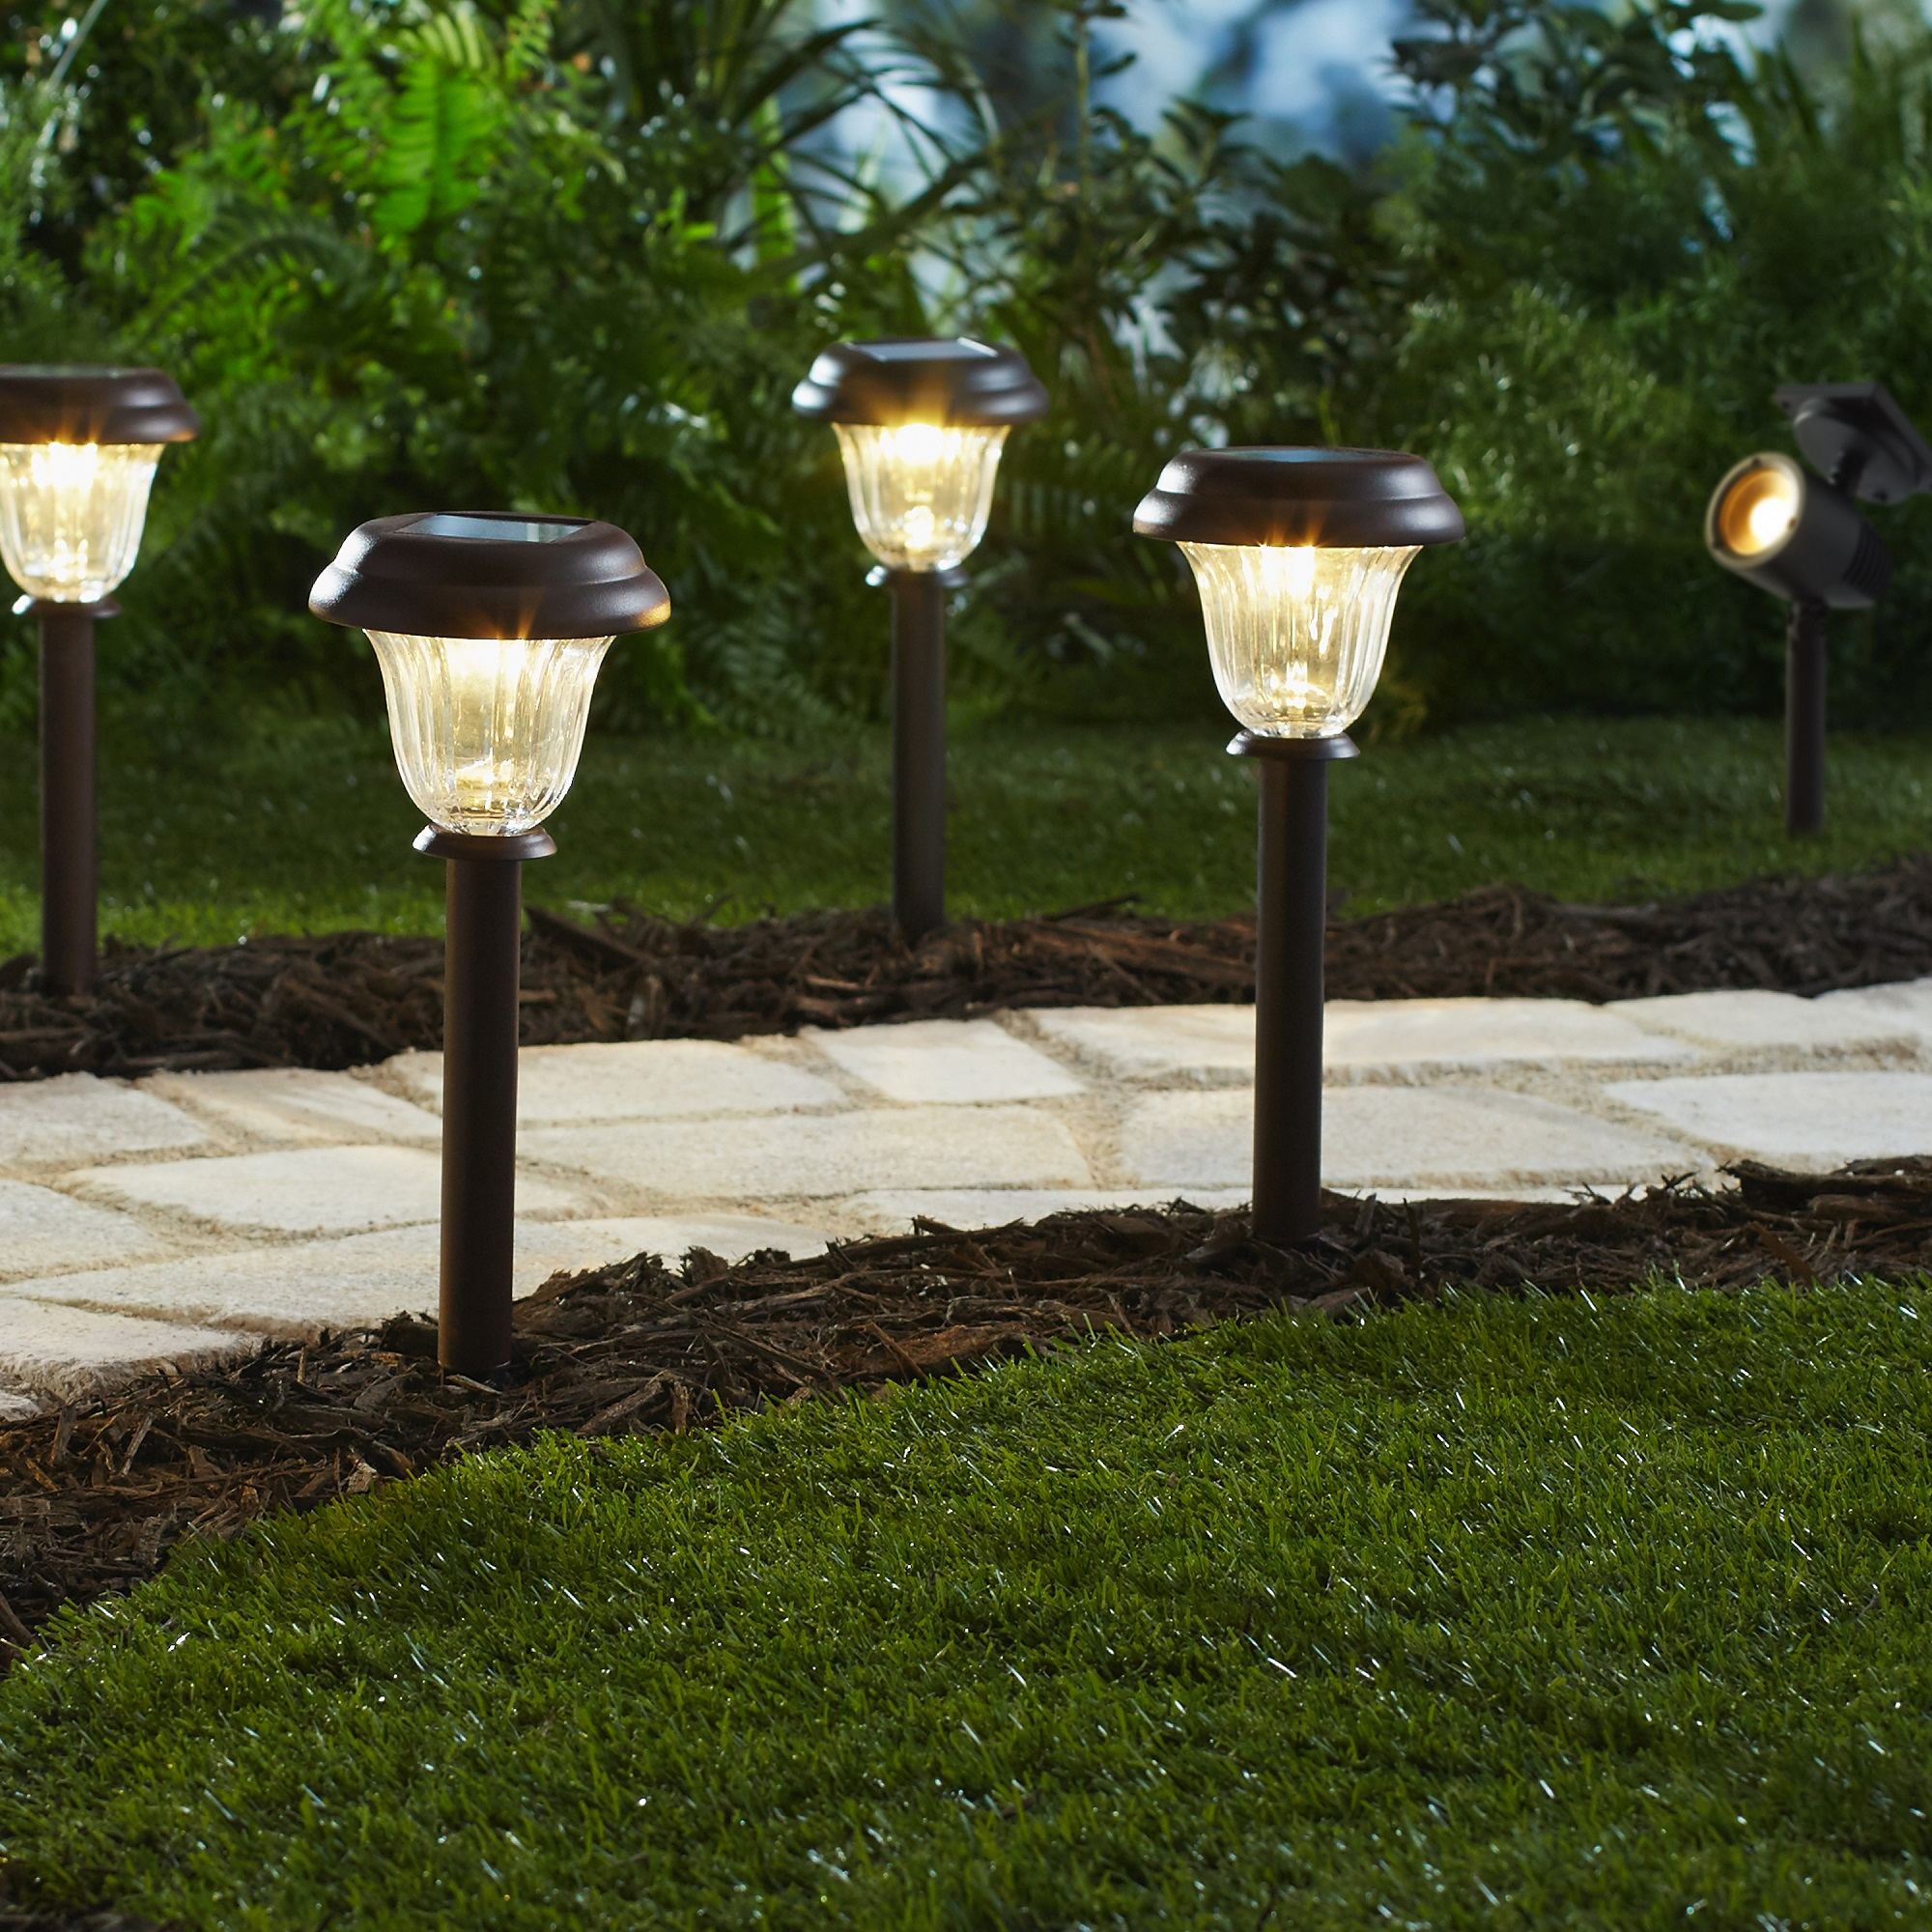 Mainstays 8 Piece Solar-Powered LED Pathway Lighting Set